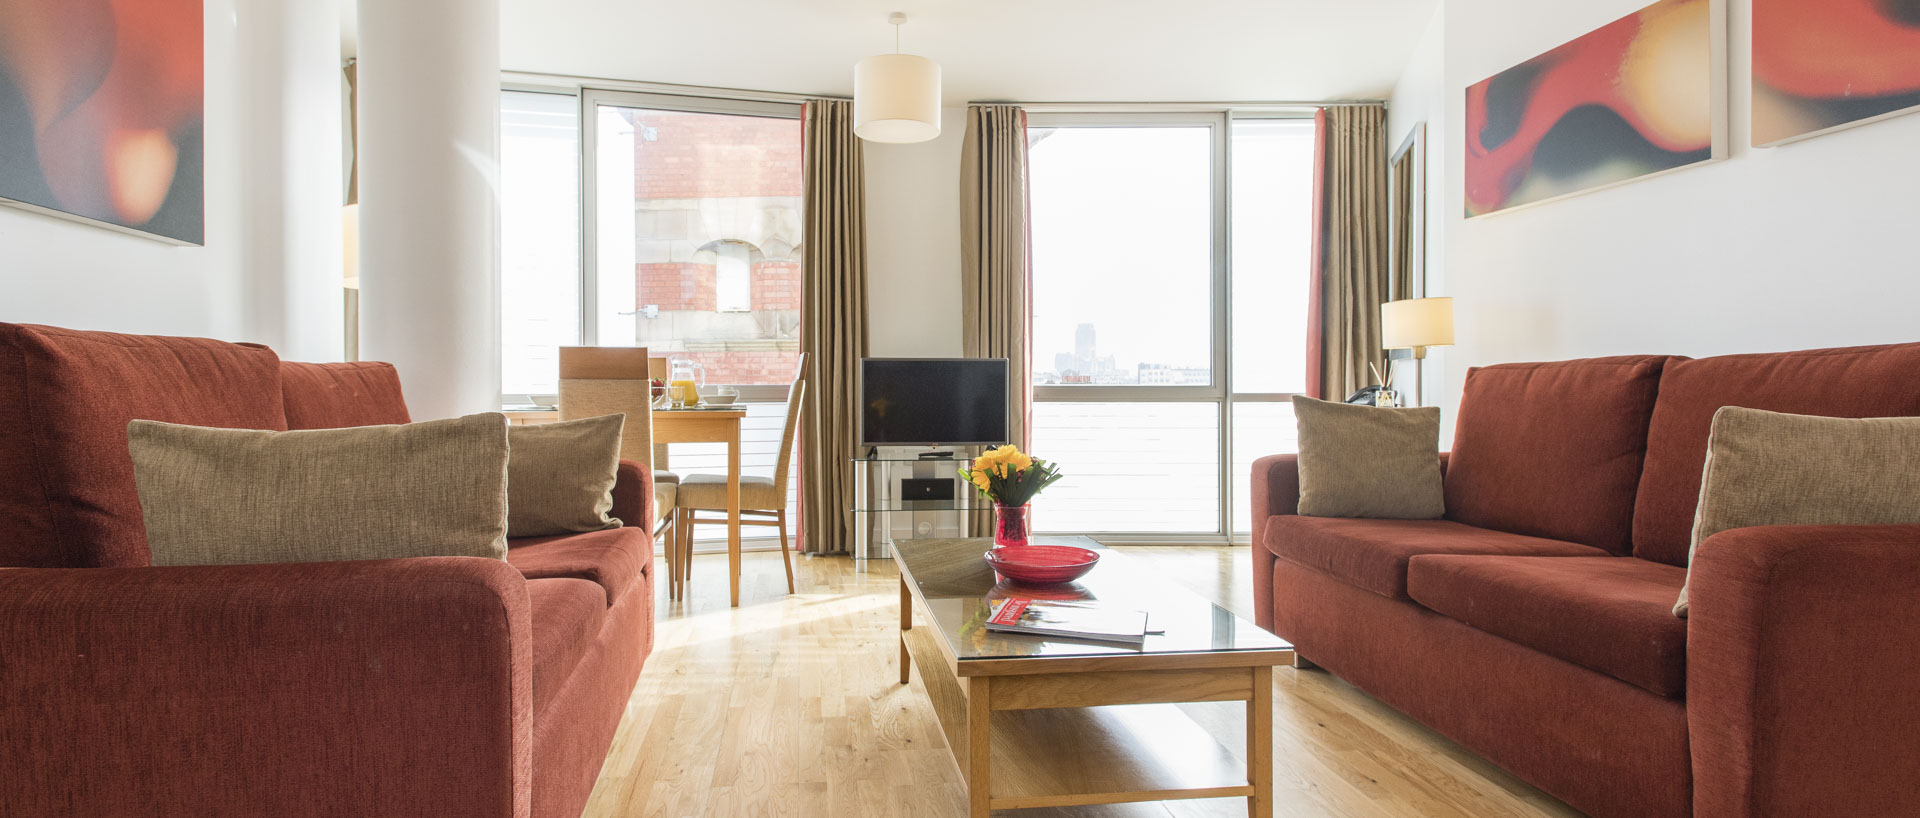 PREMIER SUITES Liverpool two bedroom apartment